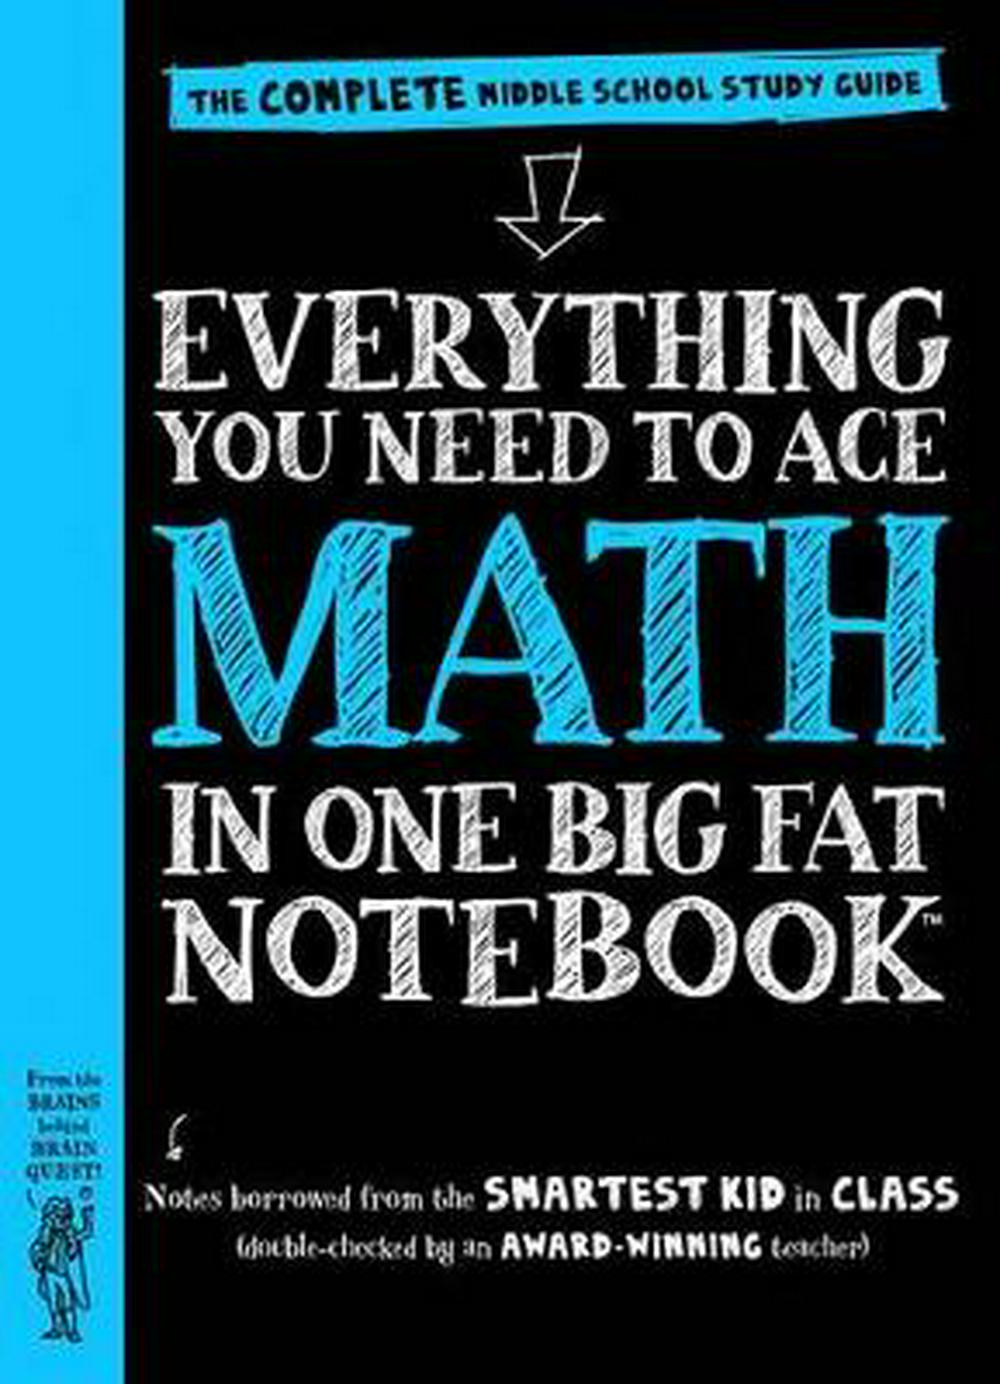 Everything You Need to Ace Math in One Big Fat NotebookA Middle School Study Guide by Altair Peterson, ISBN: 9780761160960